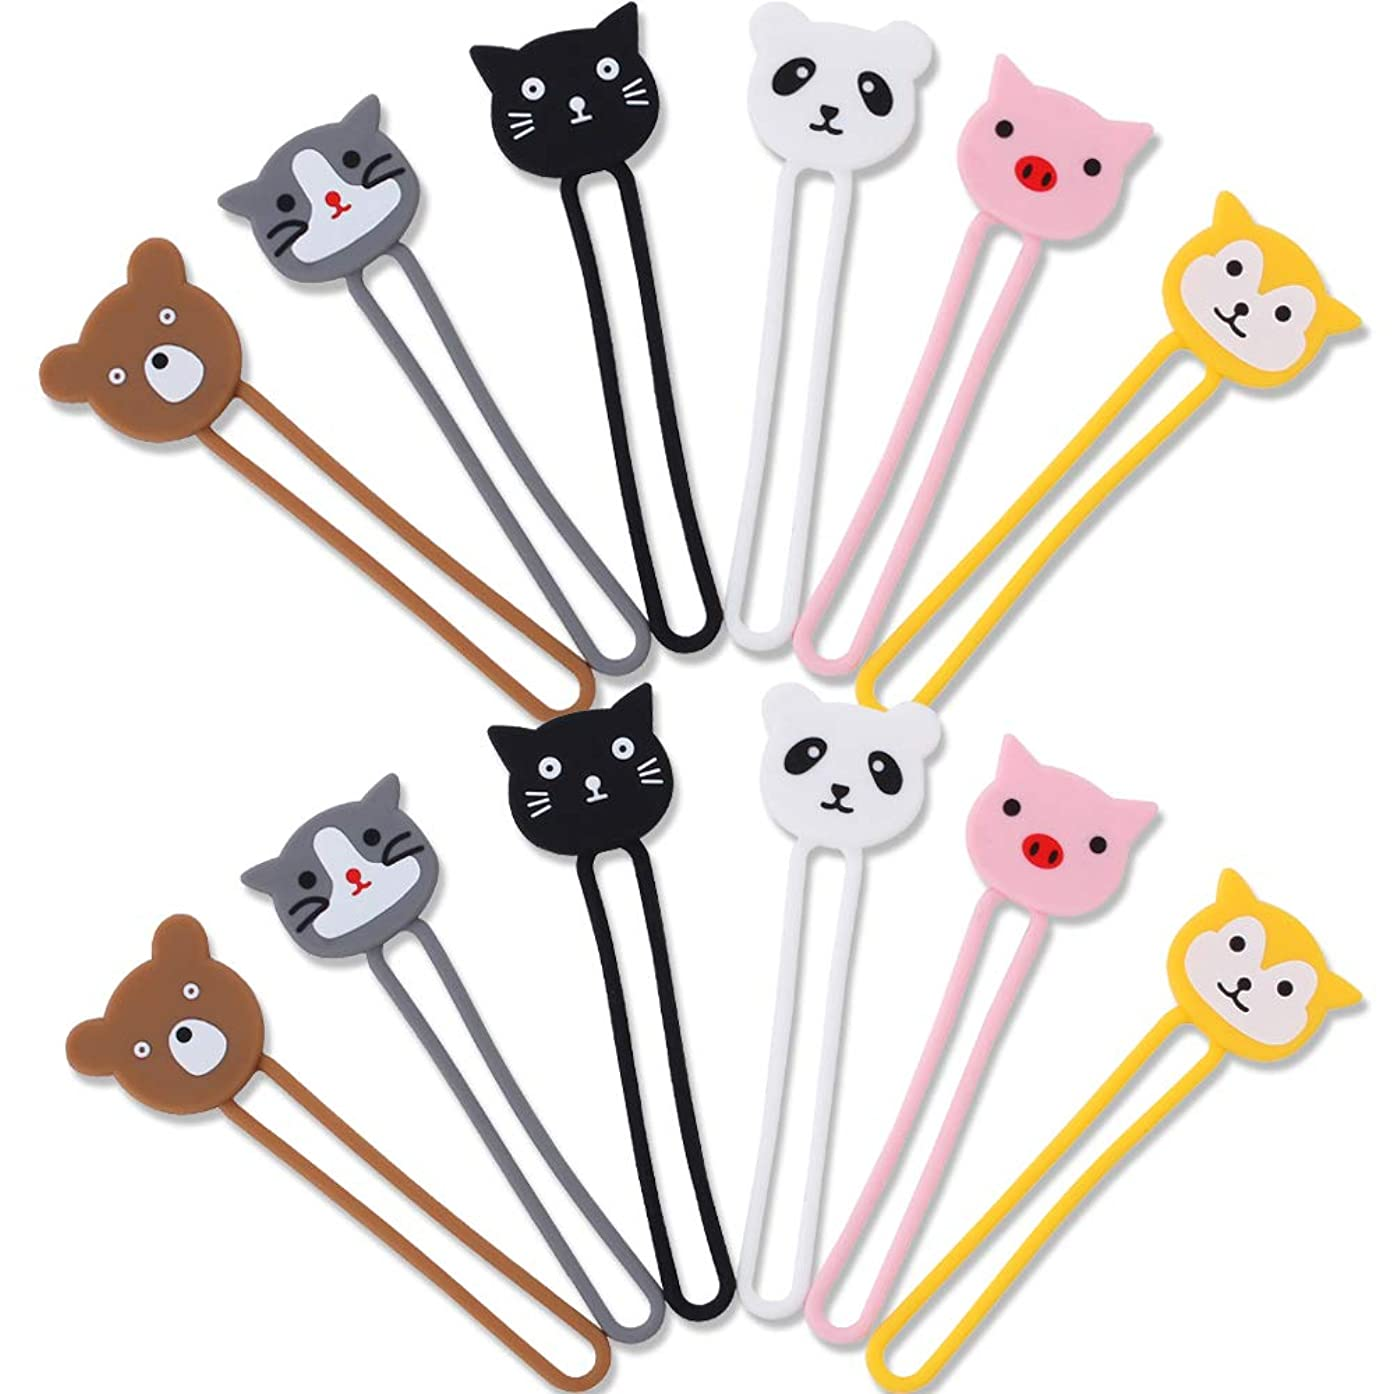 CKANDAY 12 Pack Cartoon Earphone Cable Tie Cord Organizer, 6 Colors of Animal Shapes Silicone Earbud Straps Holder Winders Wrap Key Chain Manager Keeper